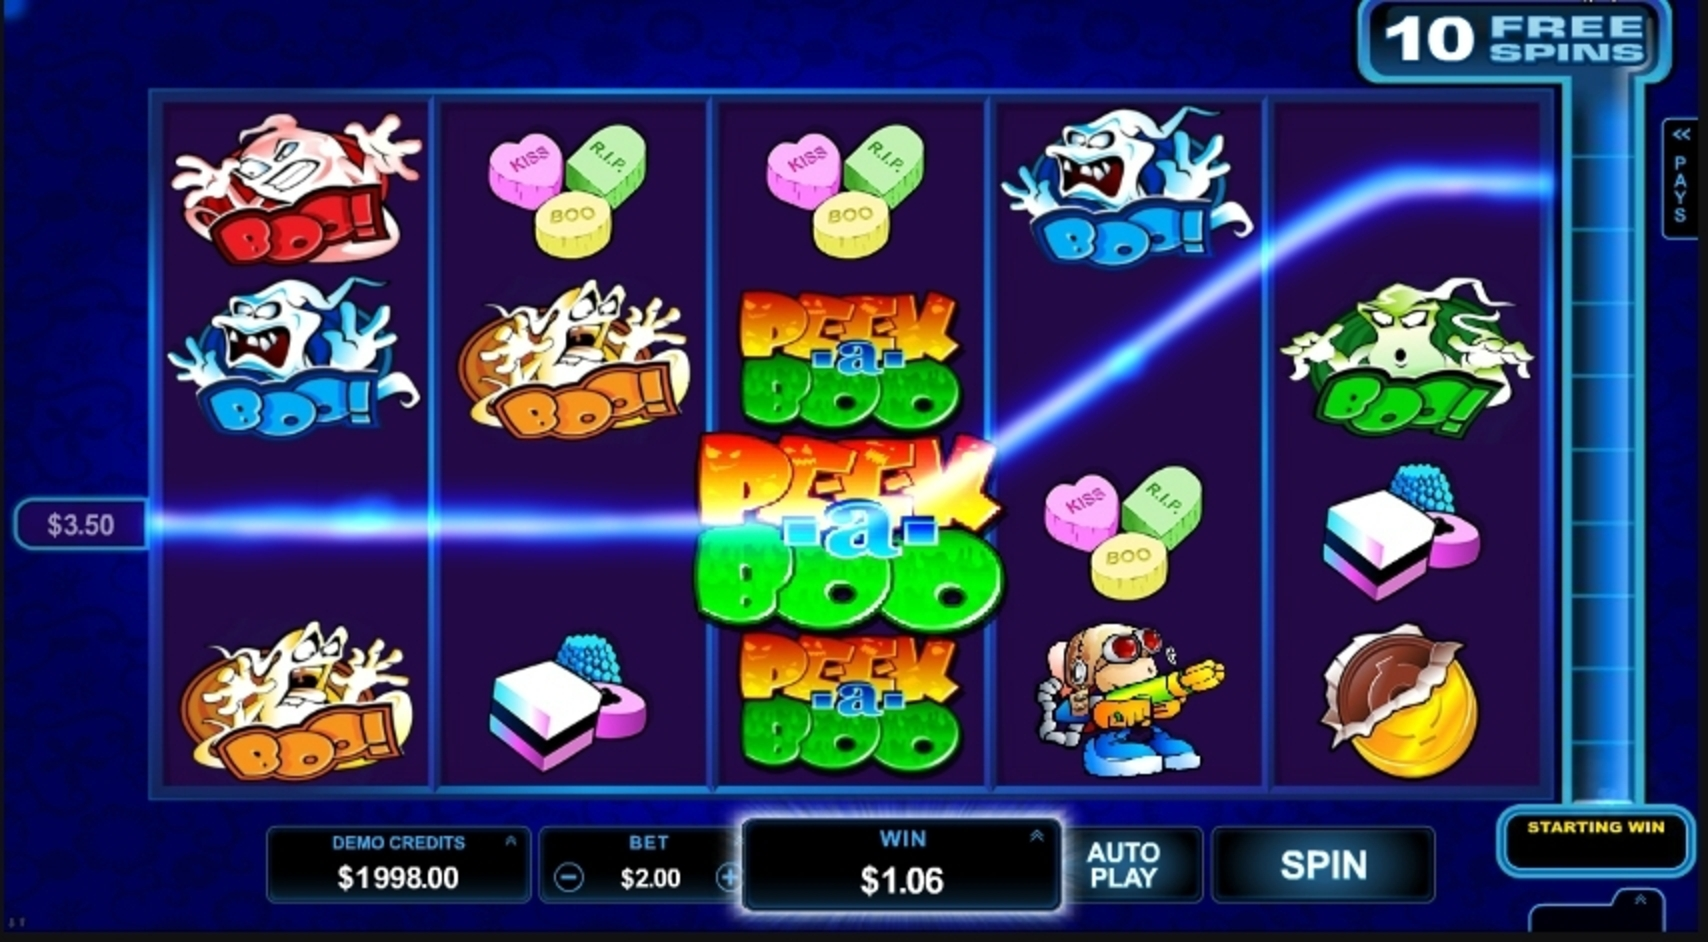 Win Money in Peek-a-Boo Free Slot Game by Microgaming